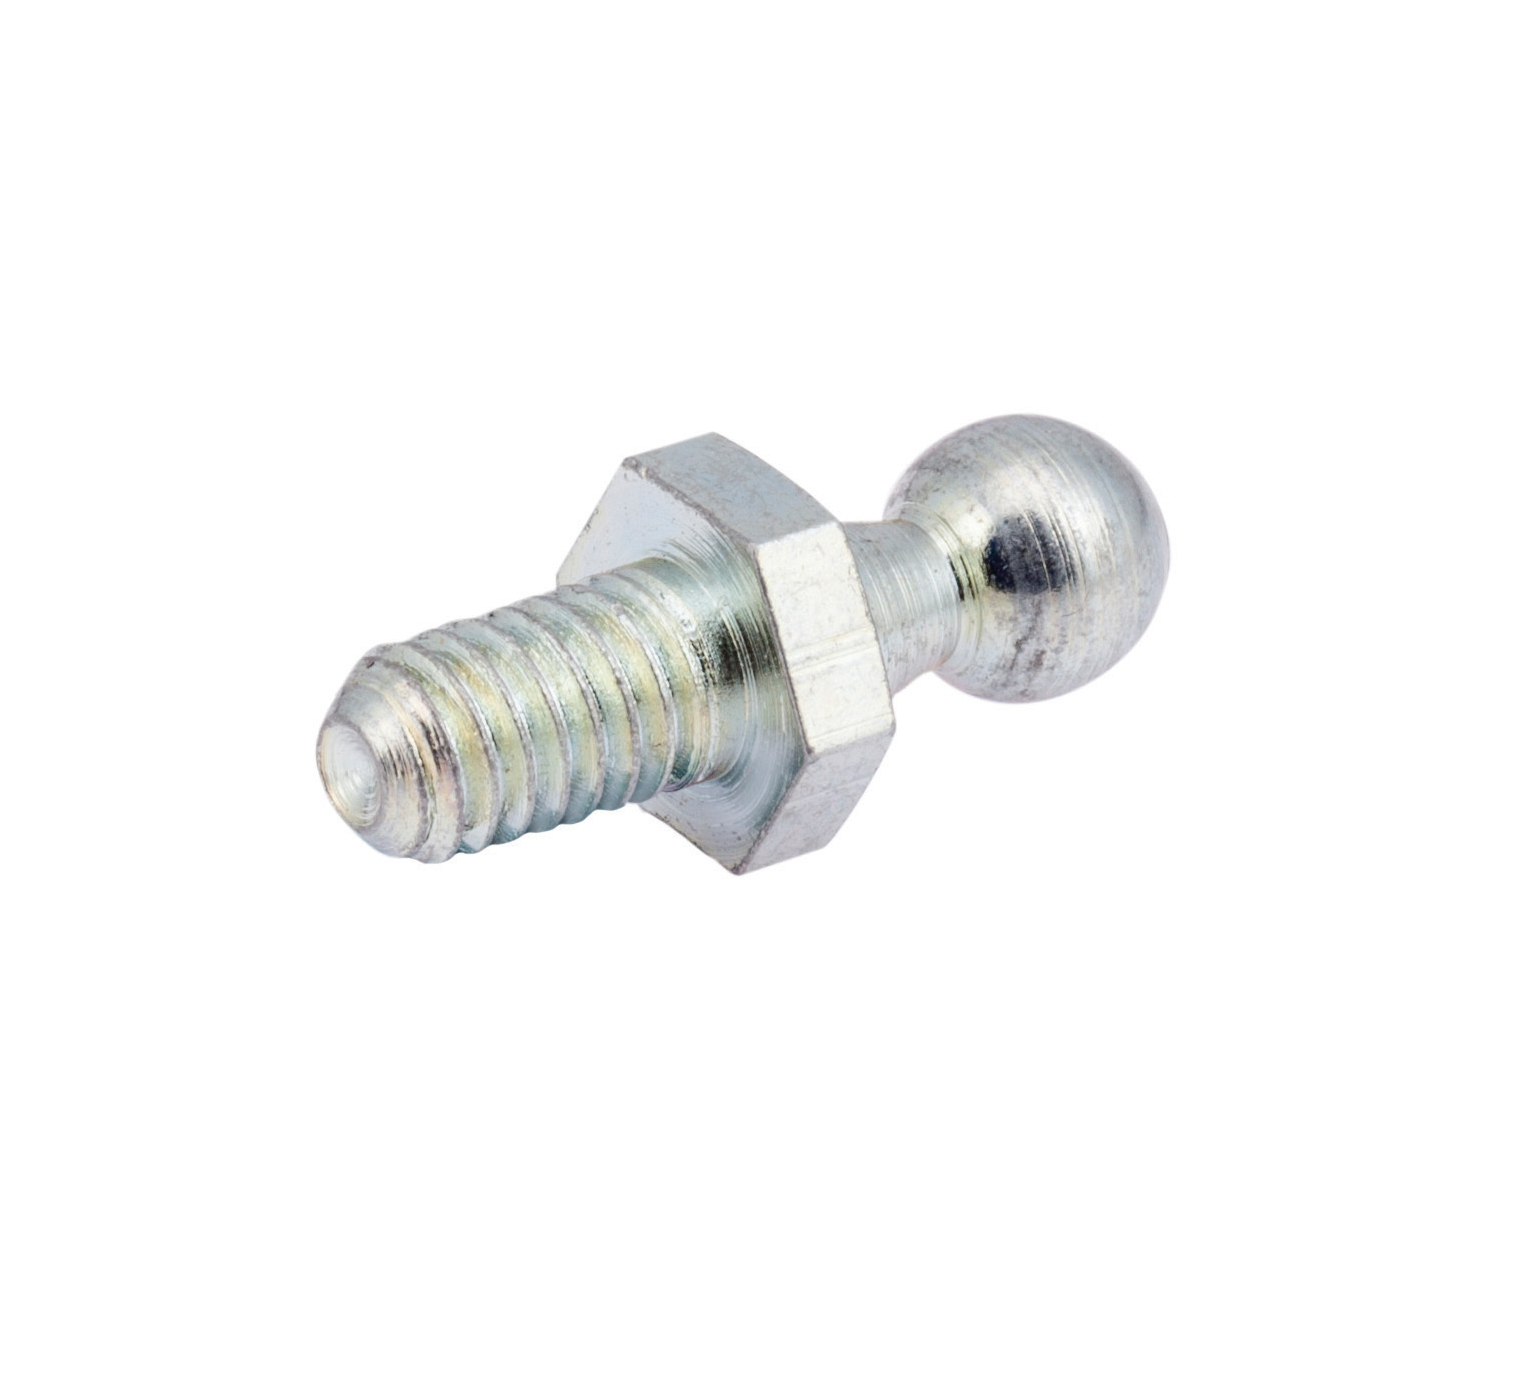 58494 Steel Ball Stud - 1.2 x 0.44 in alt 1